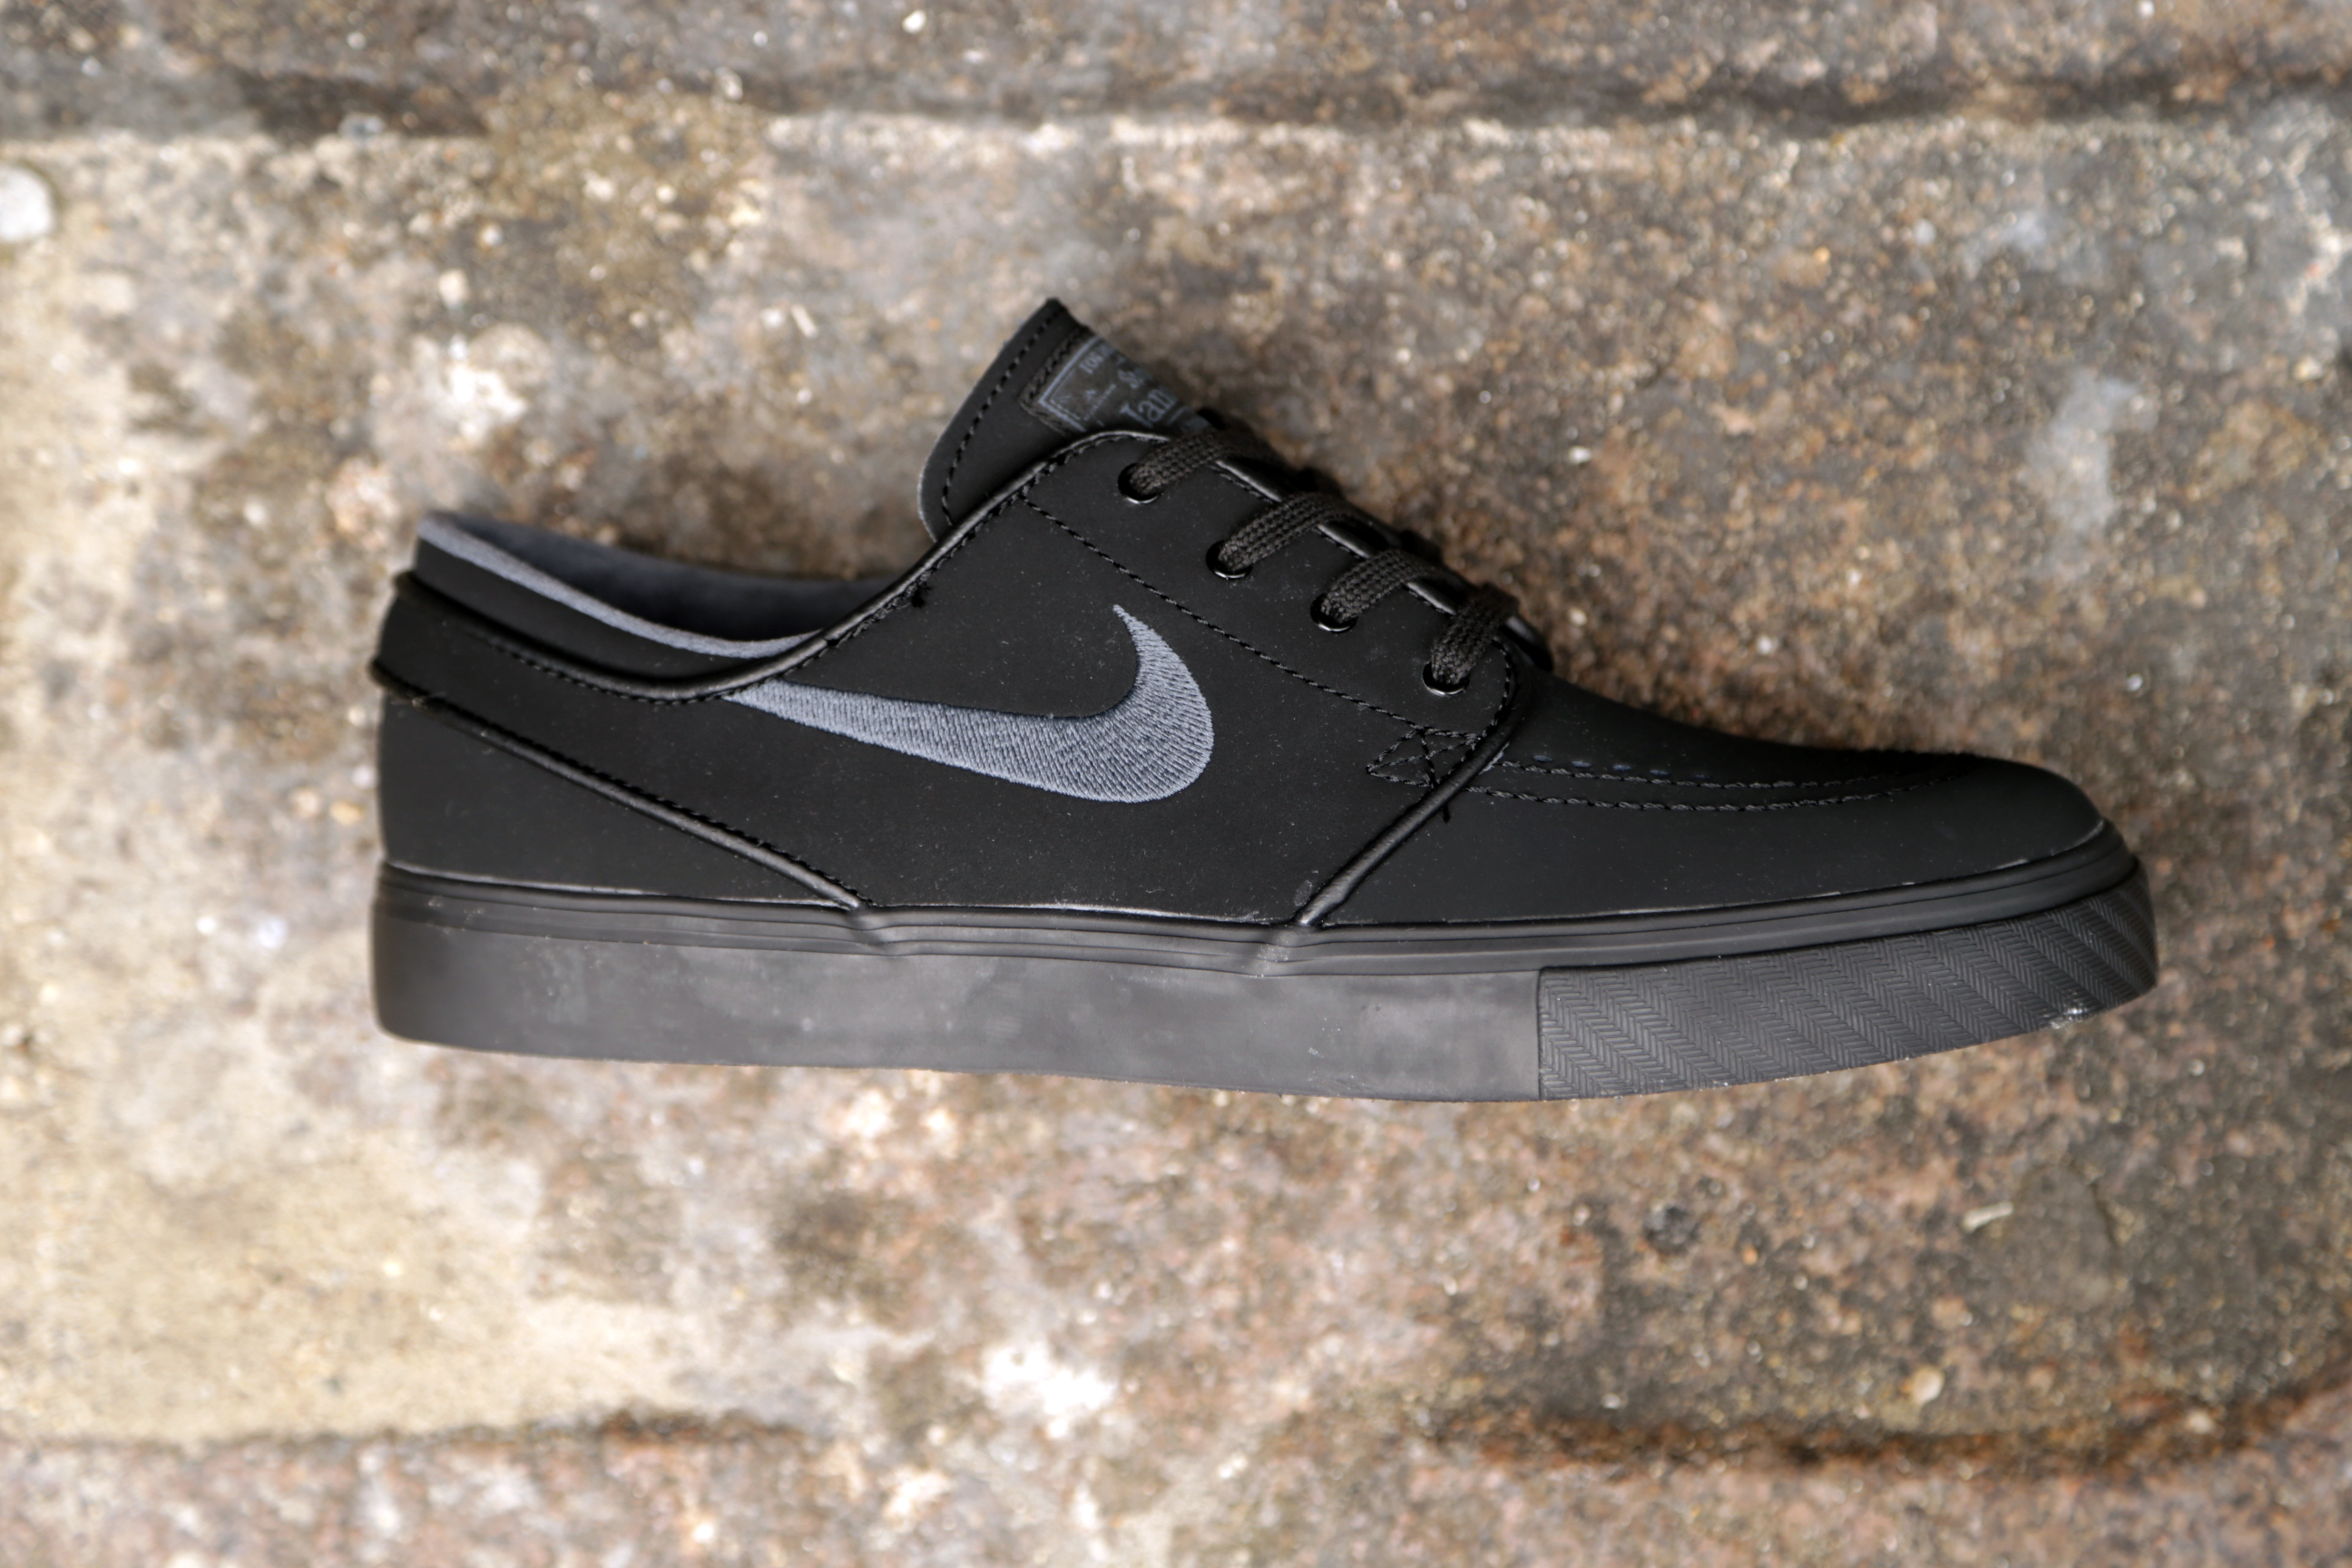 nike sb zoom stefan janoski black anthracite stasp. Black Bedroom Furniture Sets. Home Design Ideas